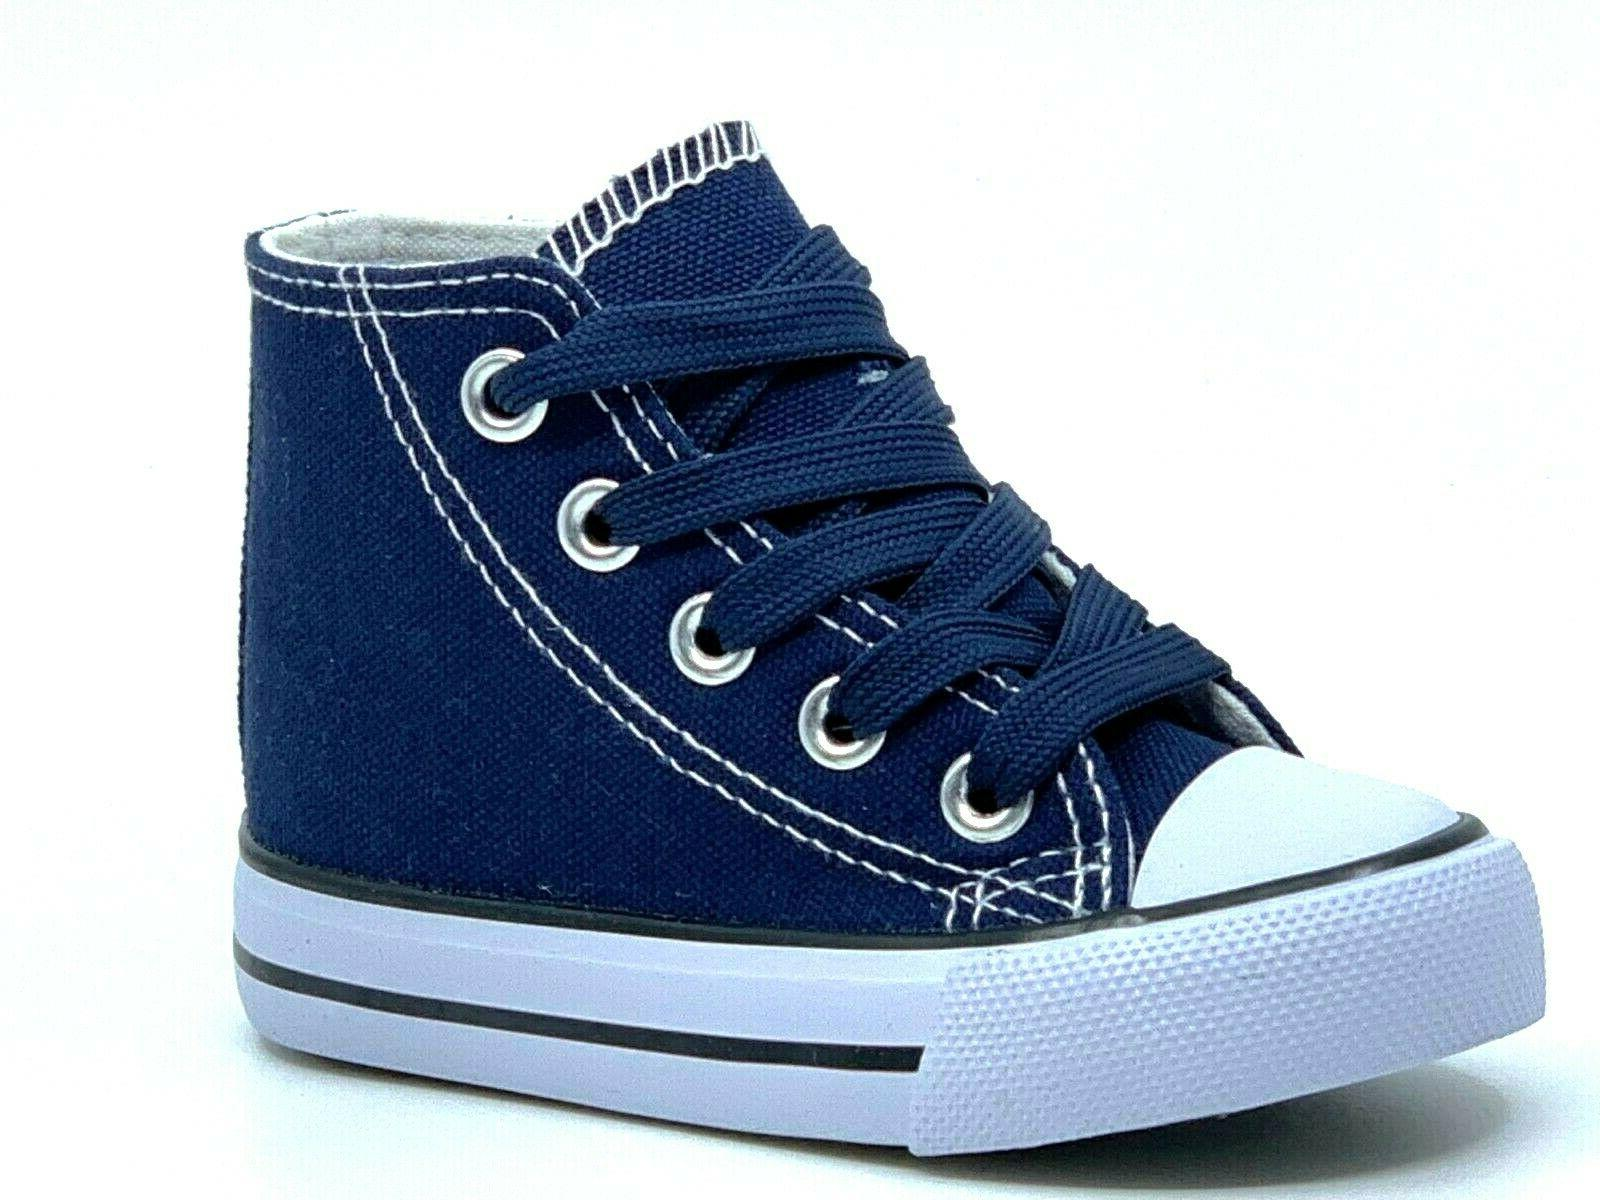 New Lace Up High Top Baby Toddler Girls Boys Canvas Sneakers